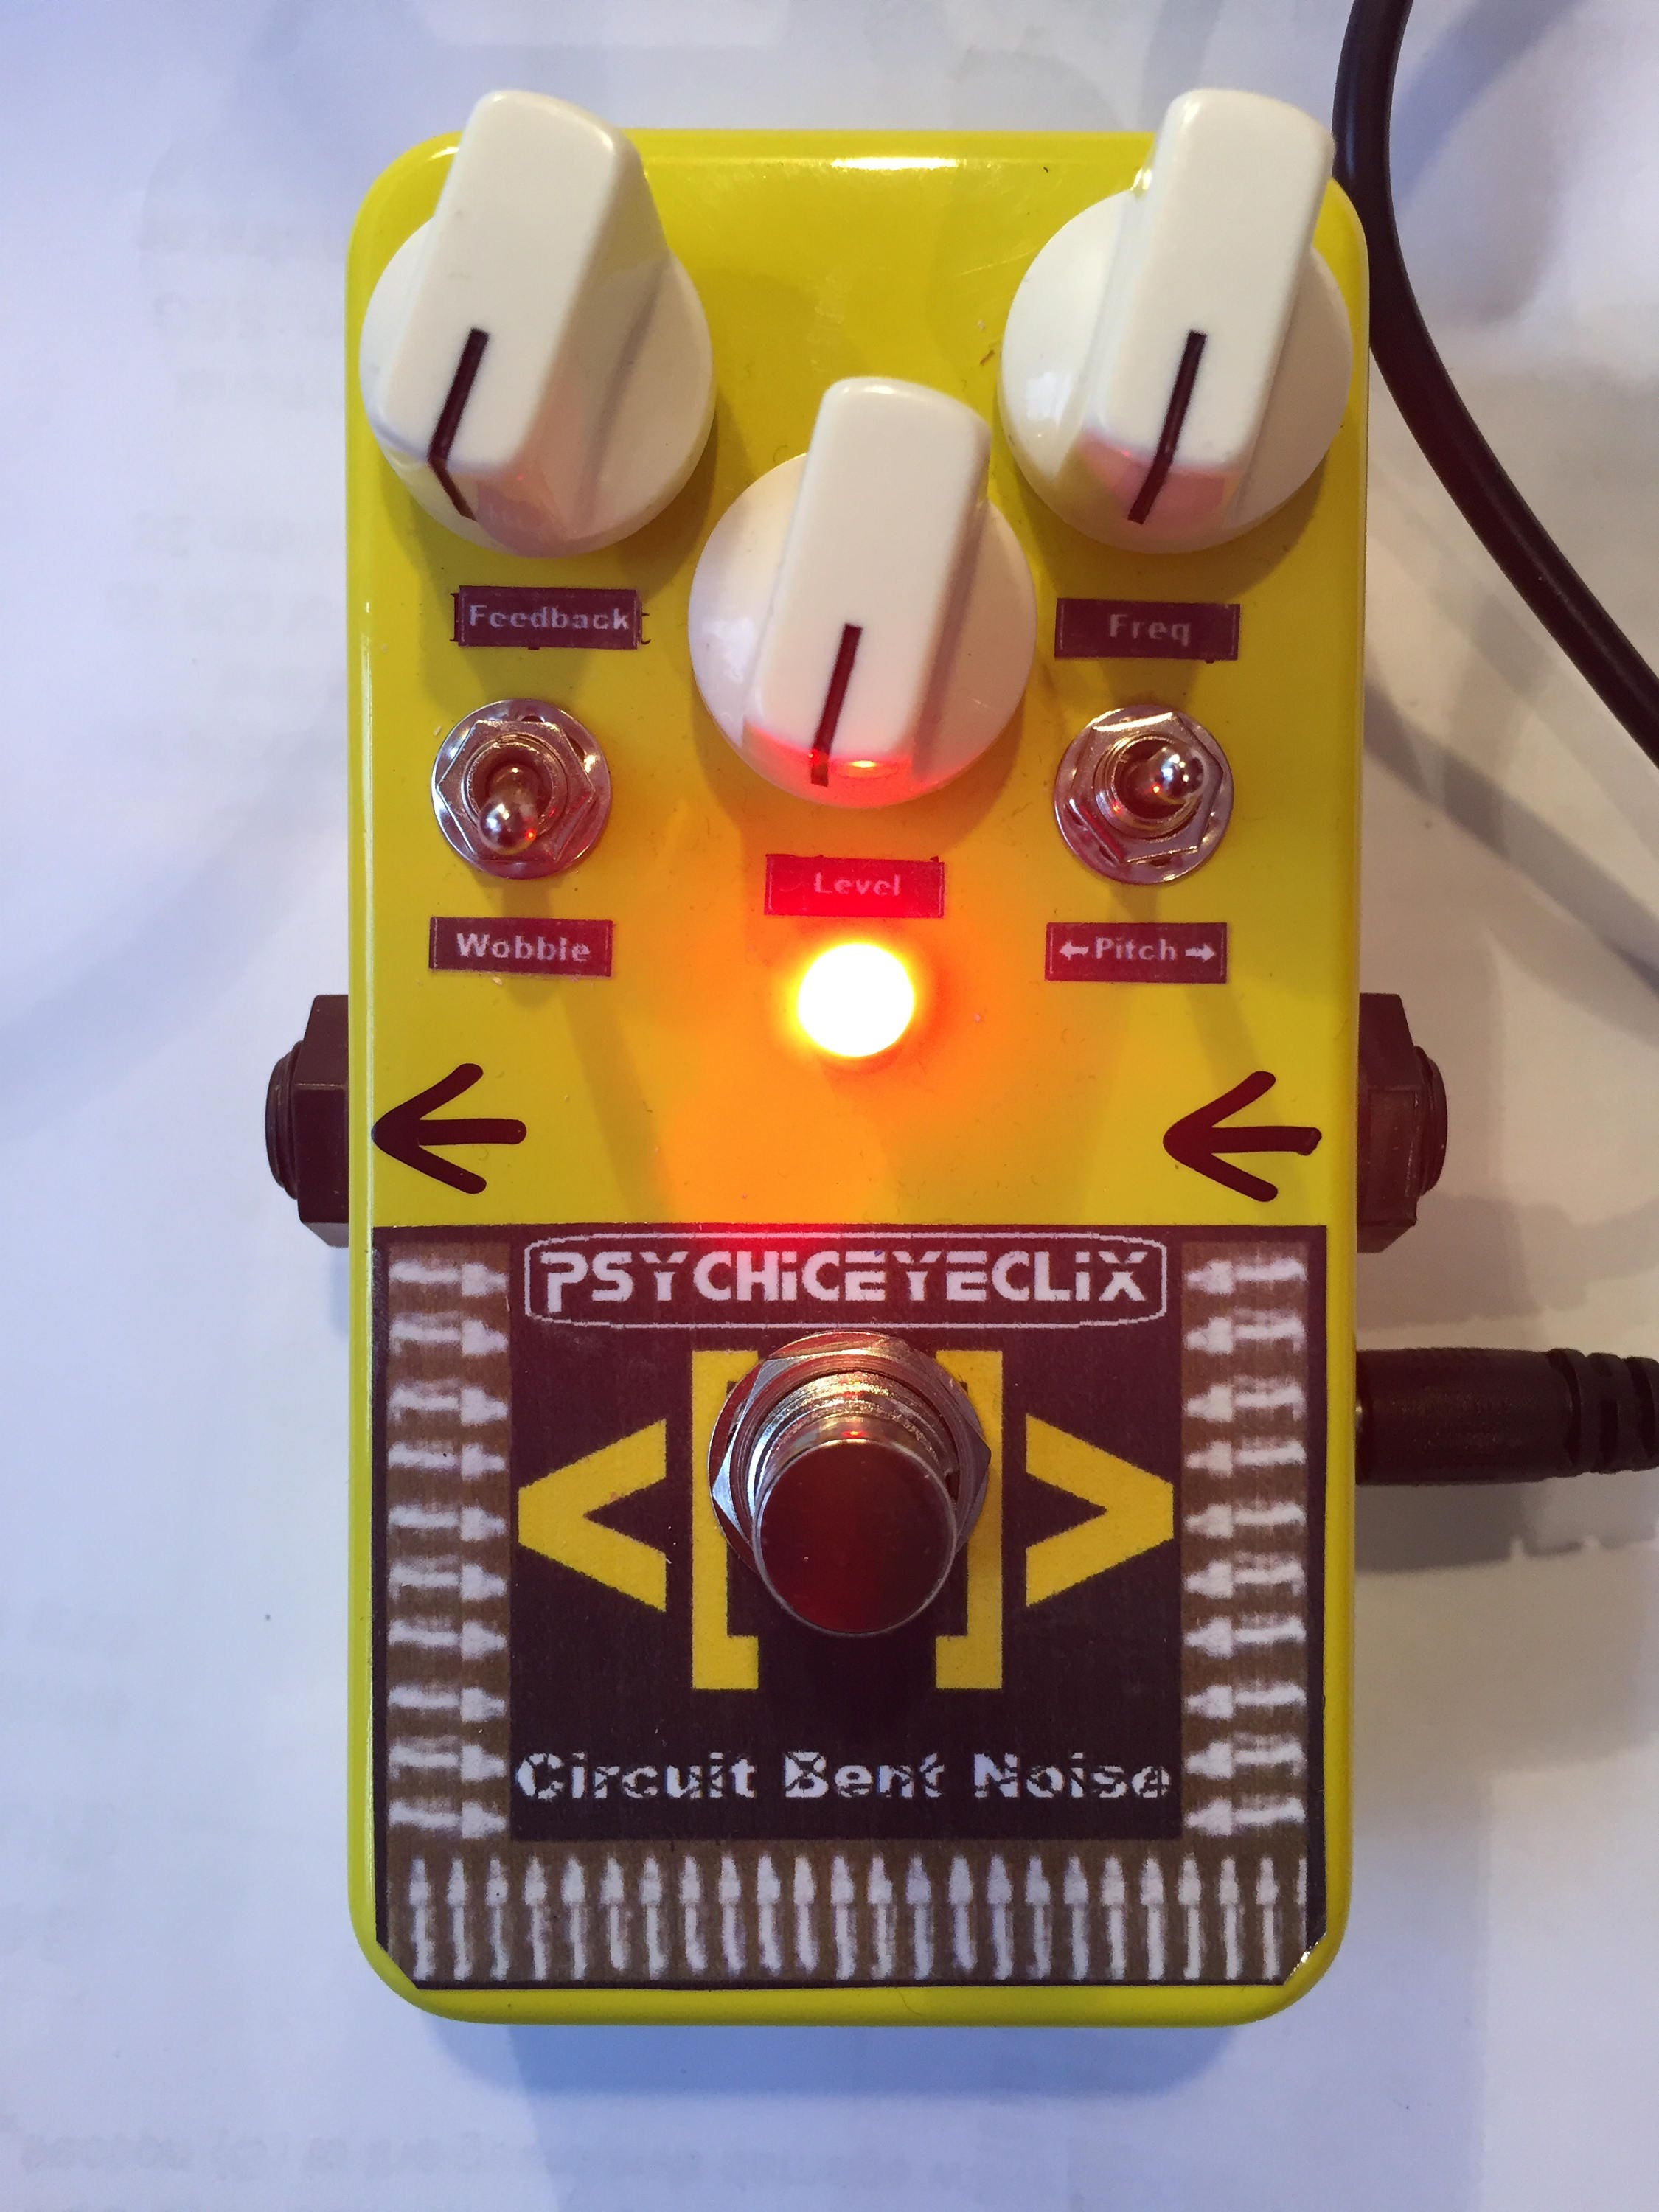 Circuit Bent Noise Pedal Fx Synth Drone Glitch Etsy Furbycircuitbendingjpg Zoom